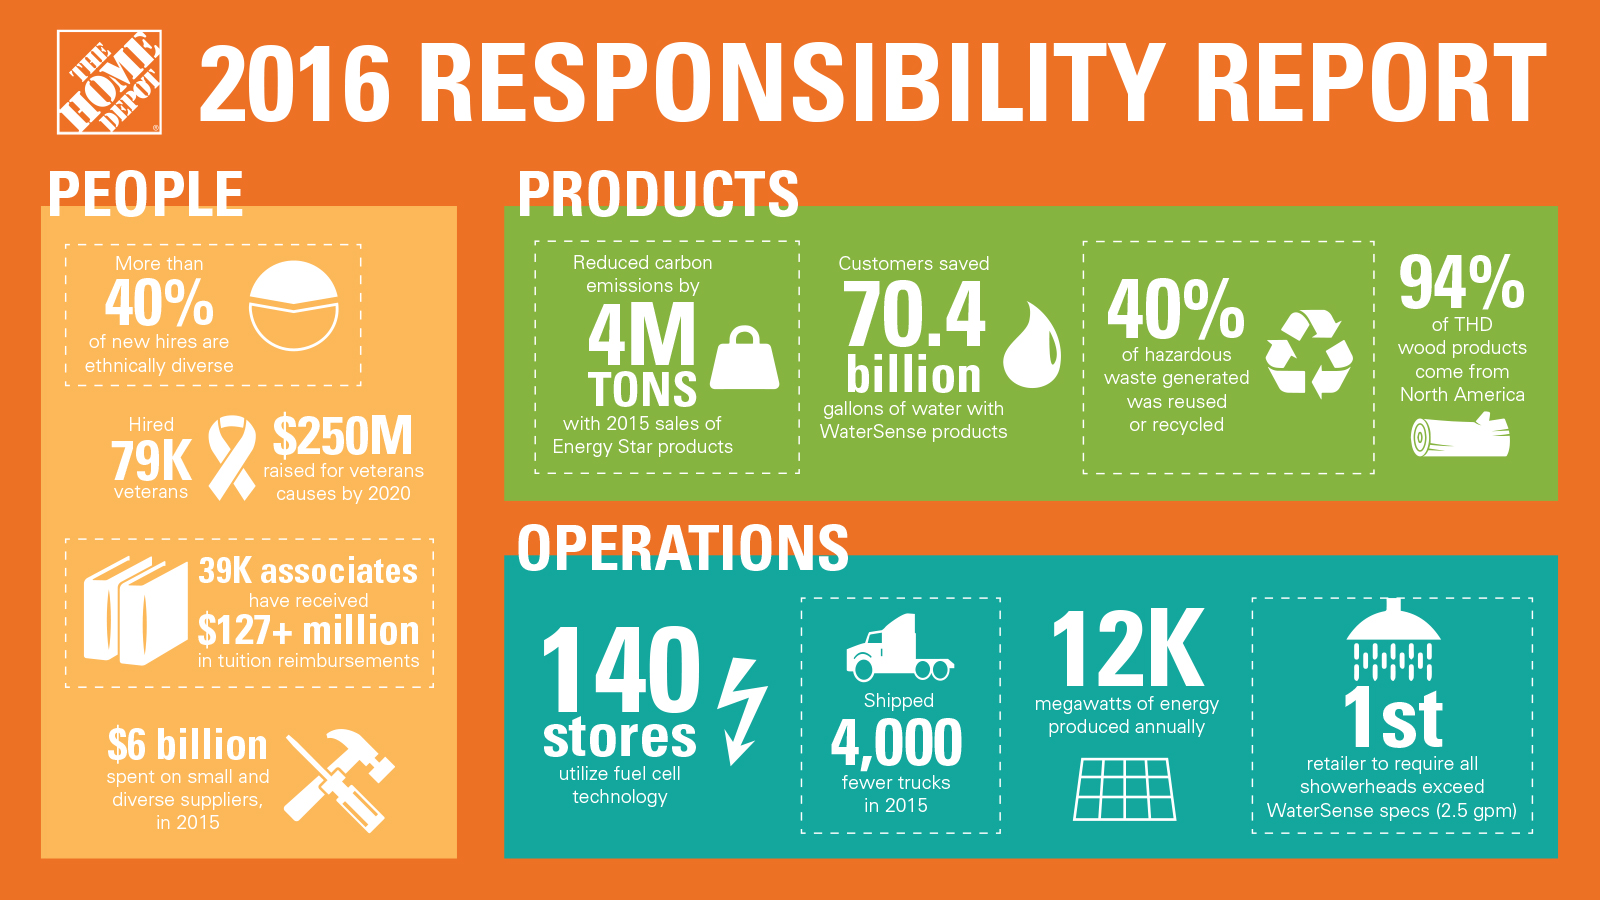 The Home Depot 2016 Responsibility Report Executive Summary Infographic